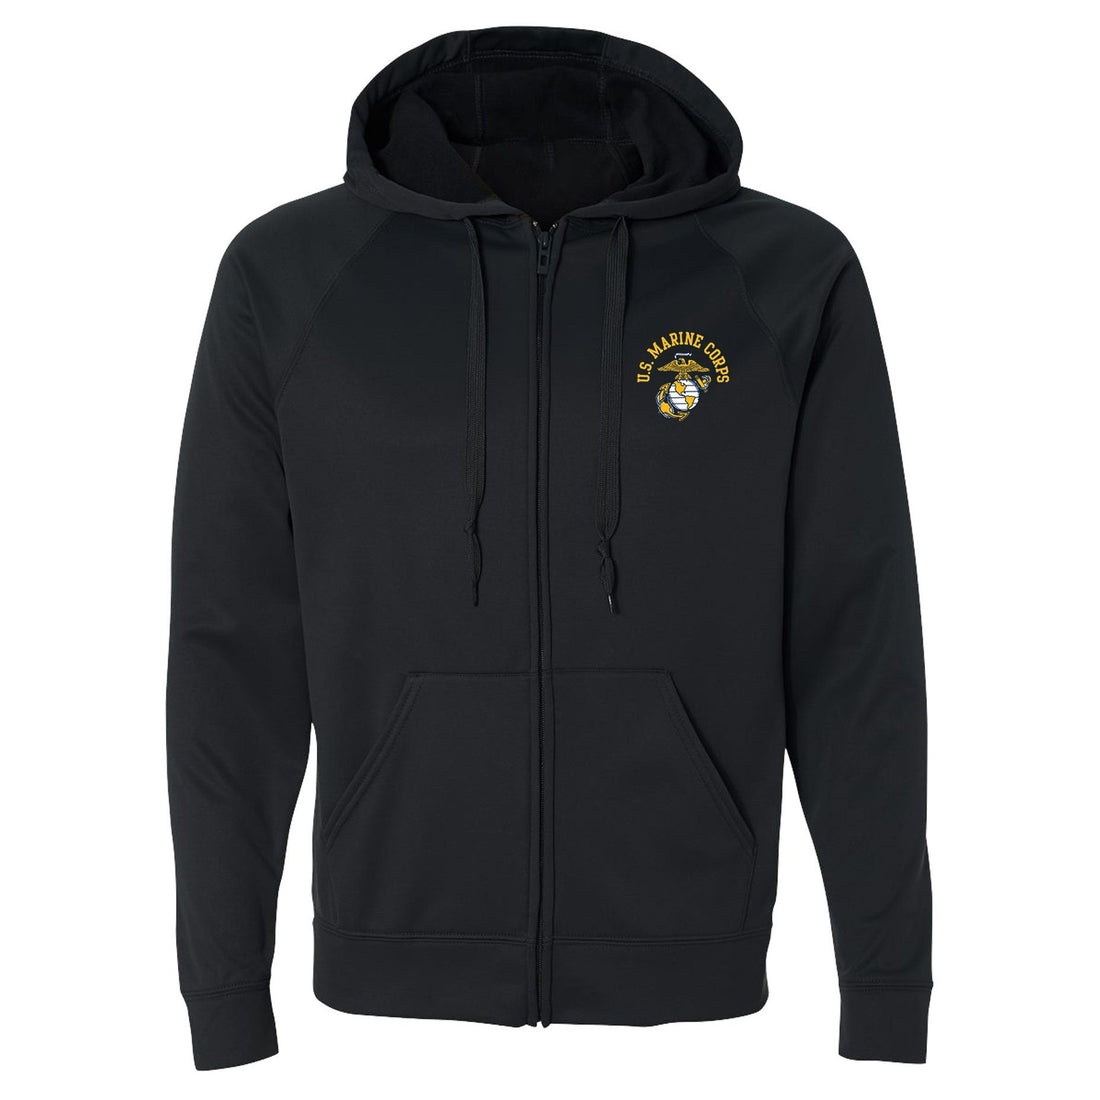 Front view of the black, full-zip USMC hoodie with the eagle, globe, and anchor emblem in the top corner from Marine Corps Direct.